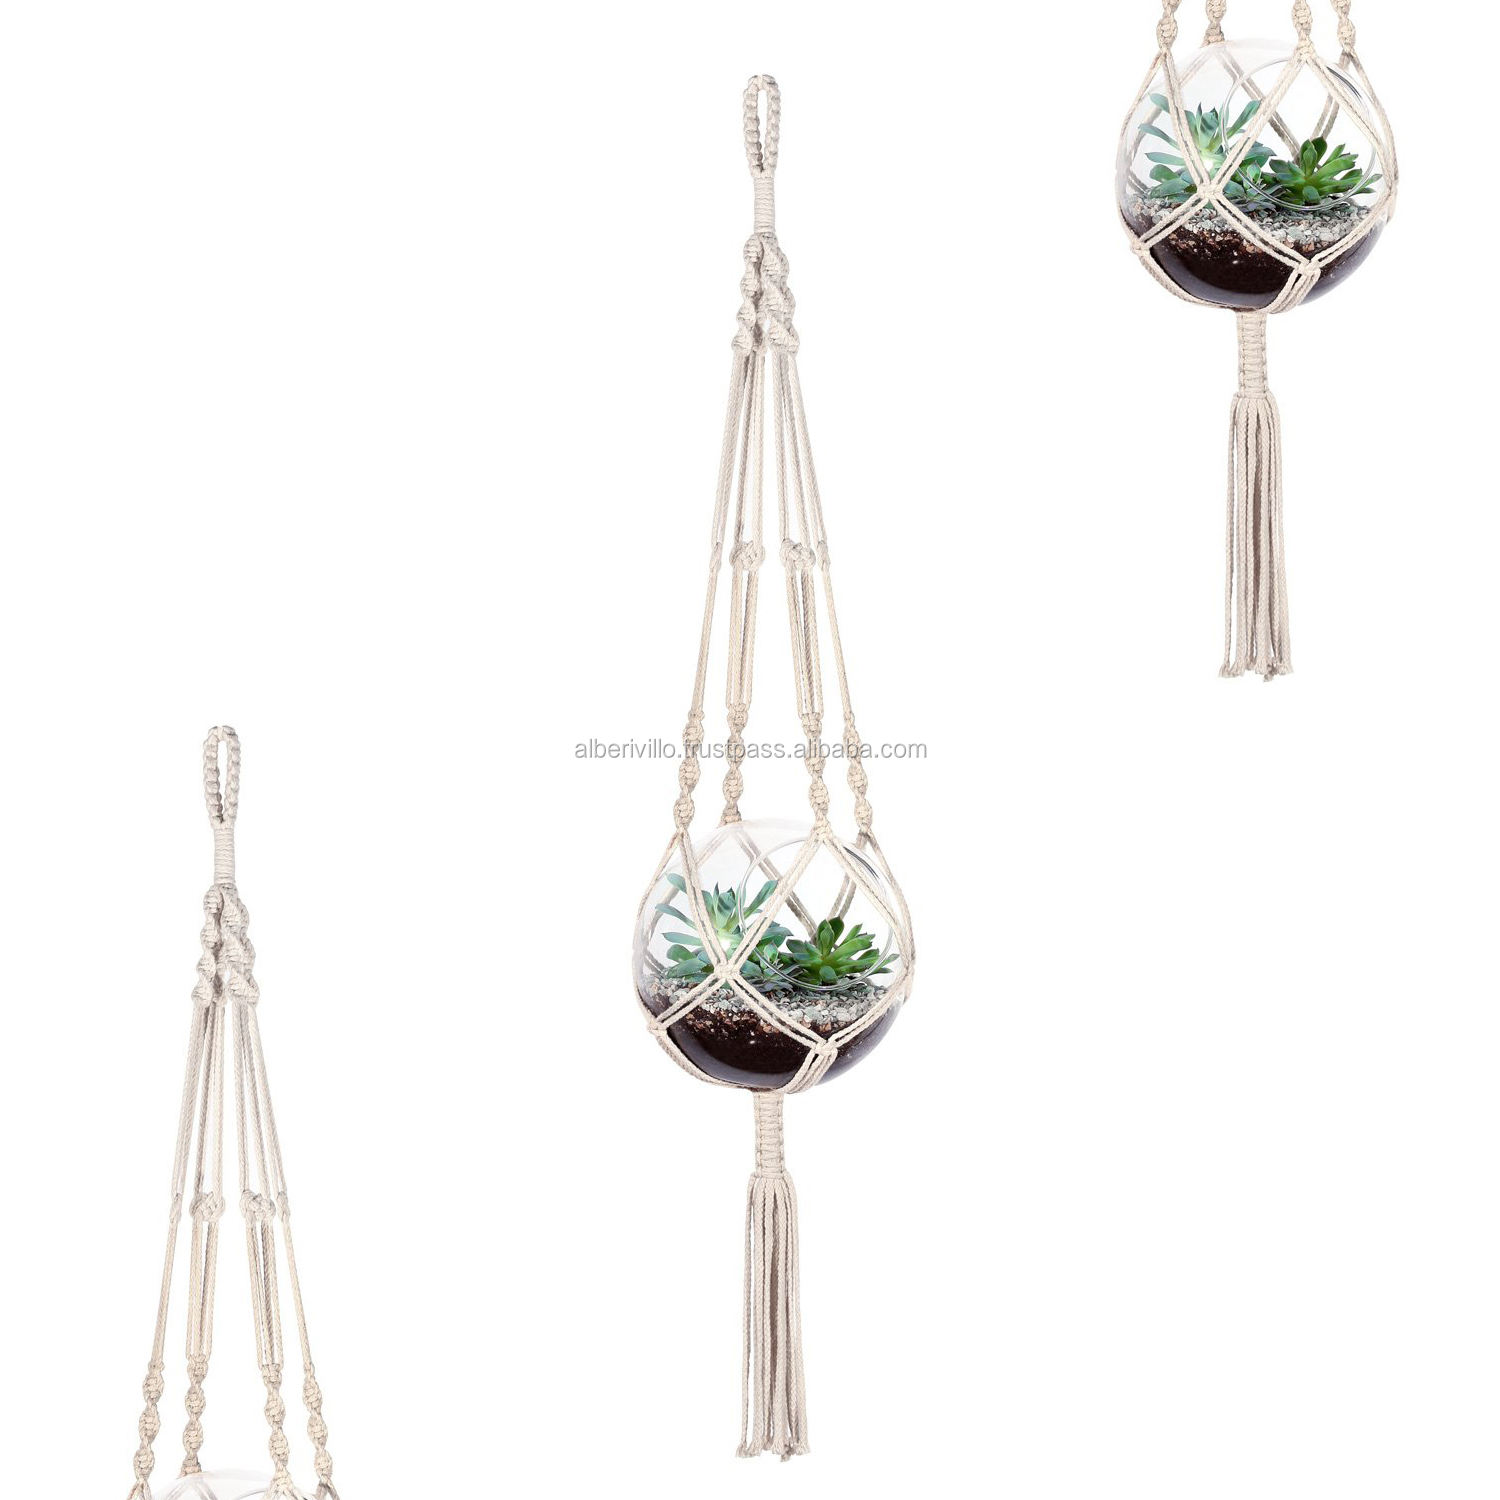 Large Macrame Plant Hanger Macrame Wall Hanger Hanging Planter Crochet Plant Hanger from India